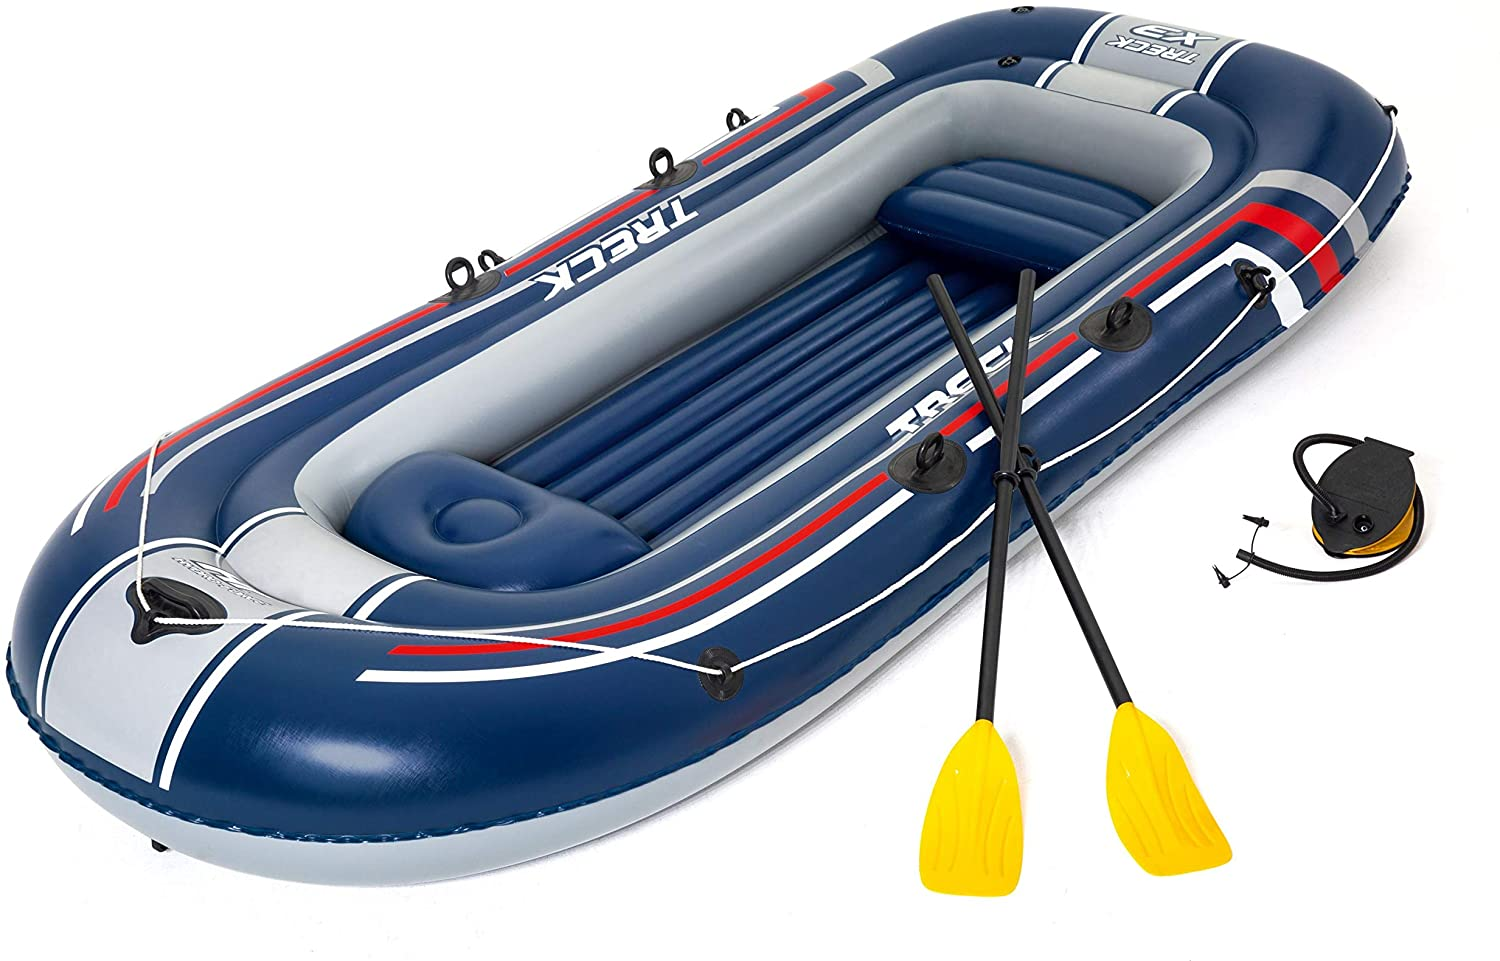 Bestway Hydro-Force Treck X3 Inflatable Boat Set, Rubber raft. - BestwayEgypt